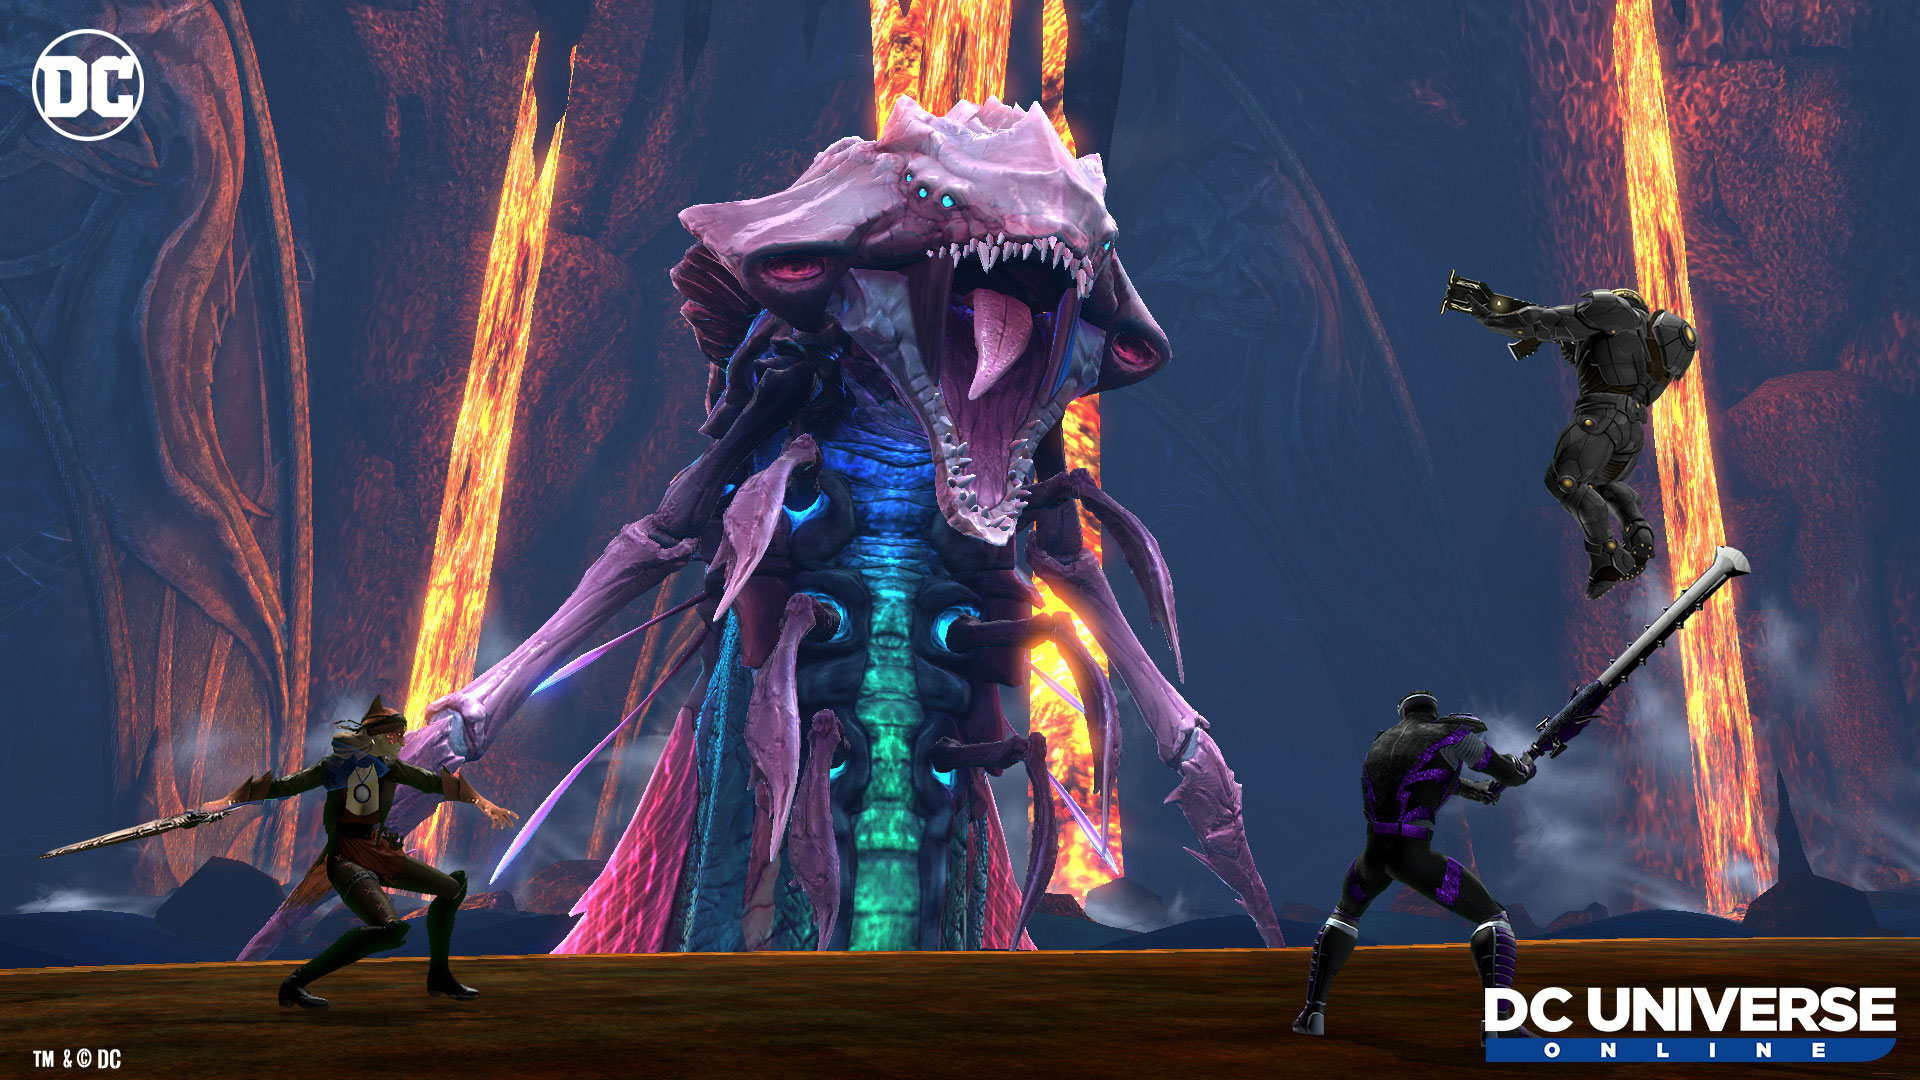 DC Universe Online launches on Switch today screenshot